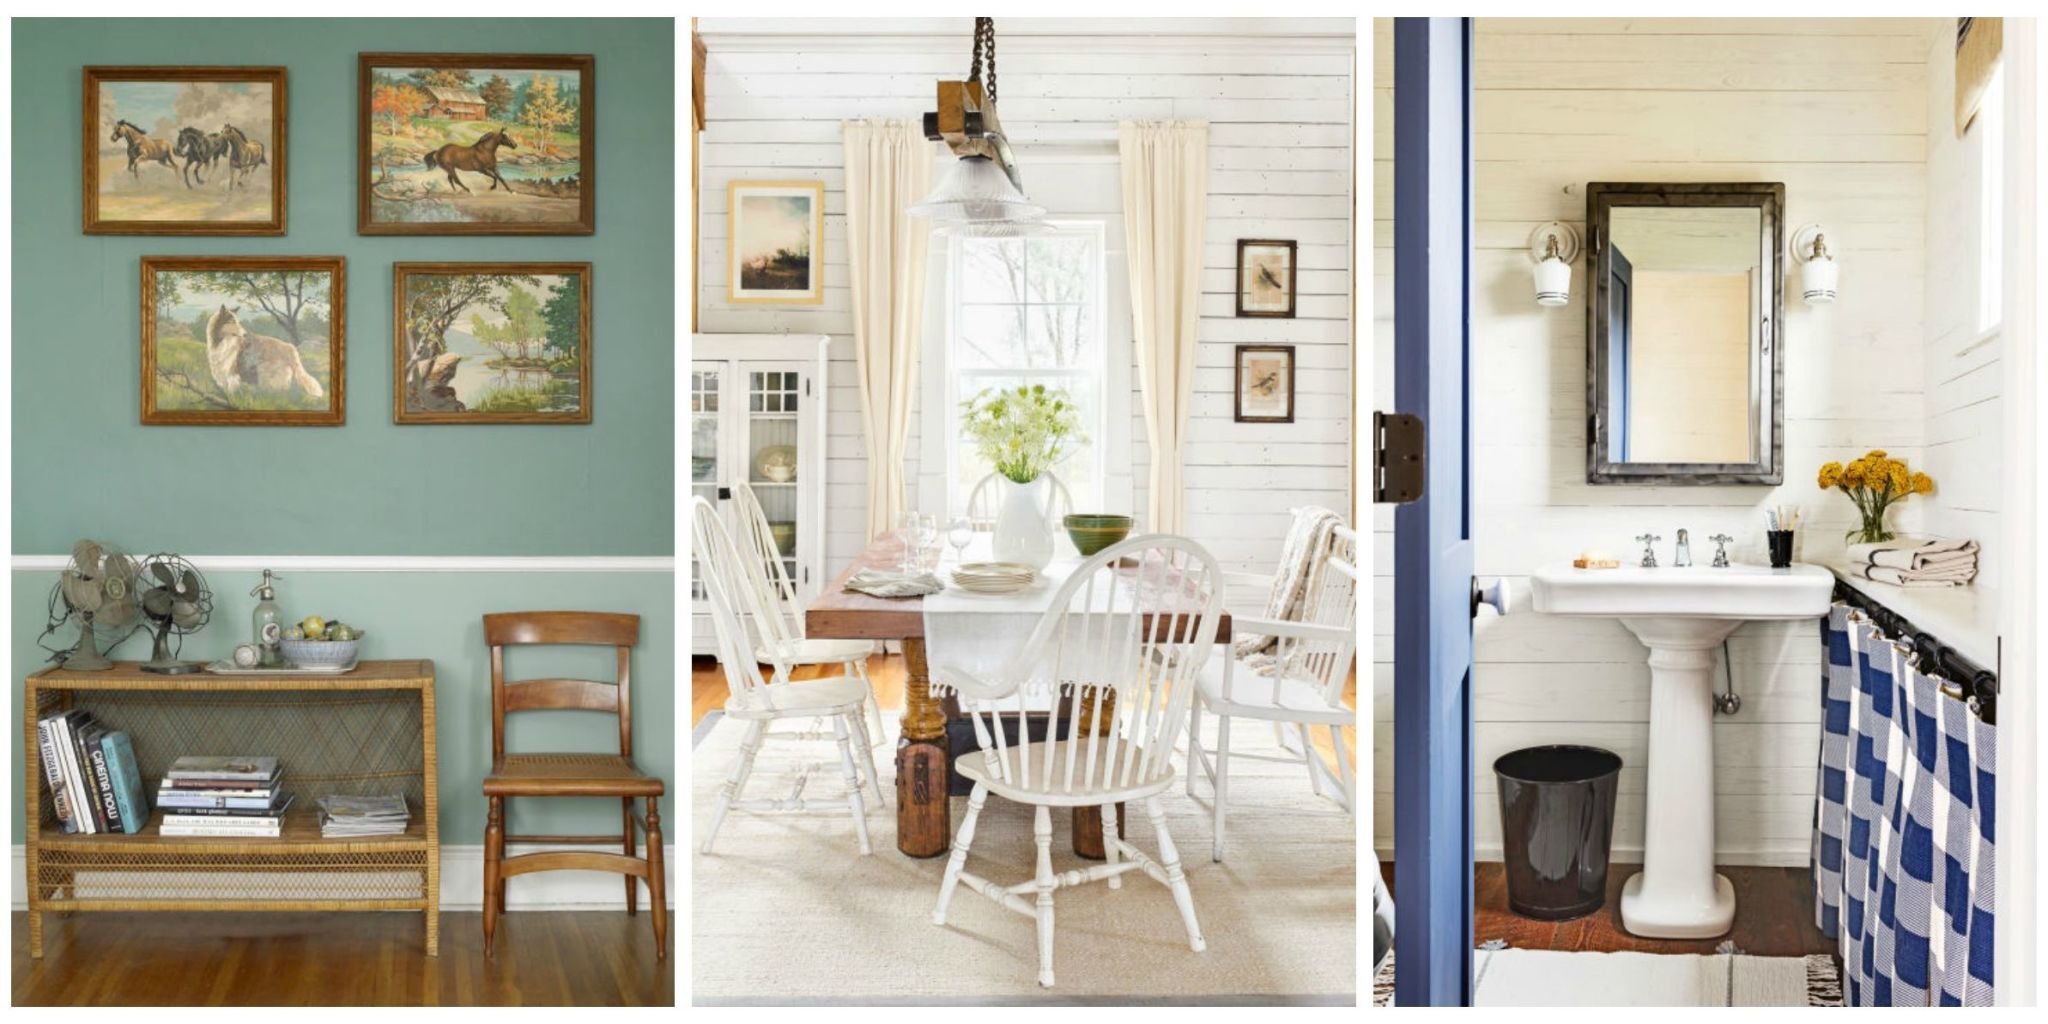 Budget home decorating tips.